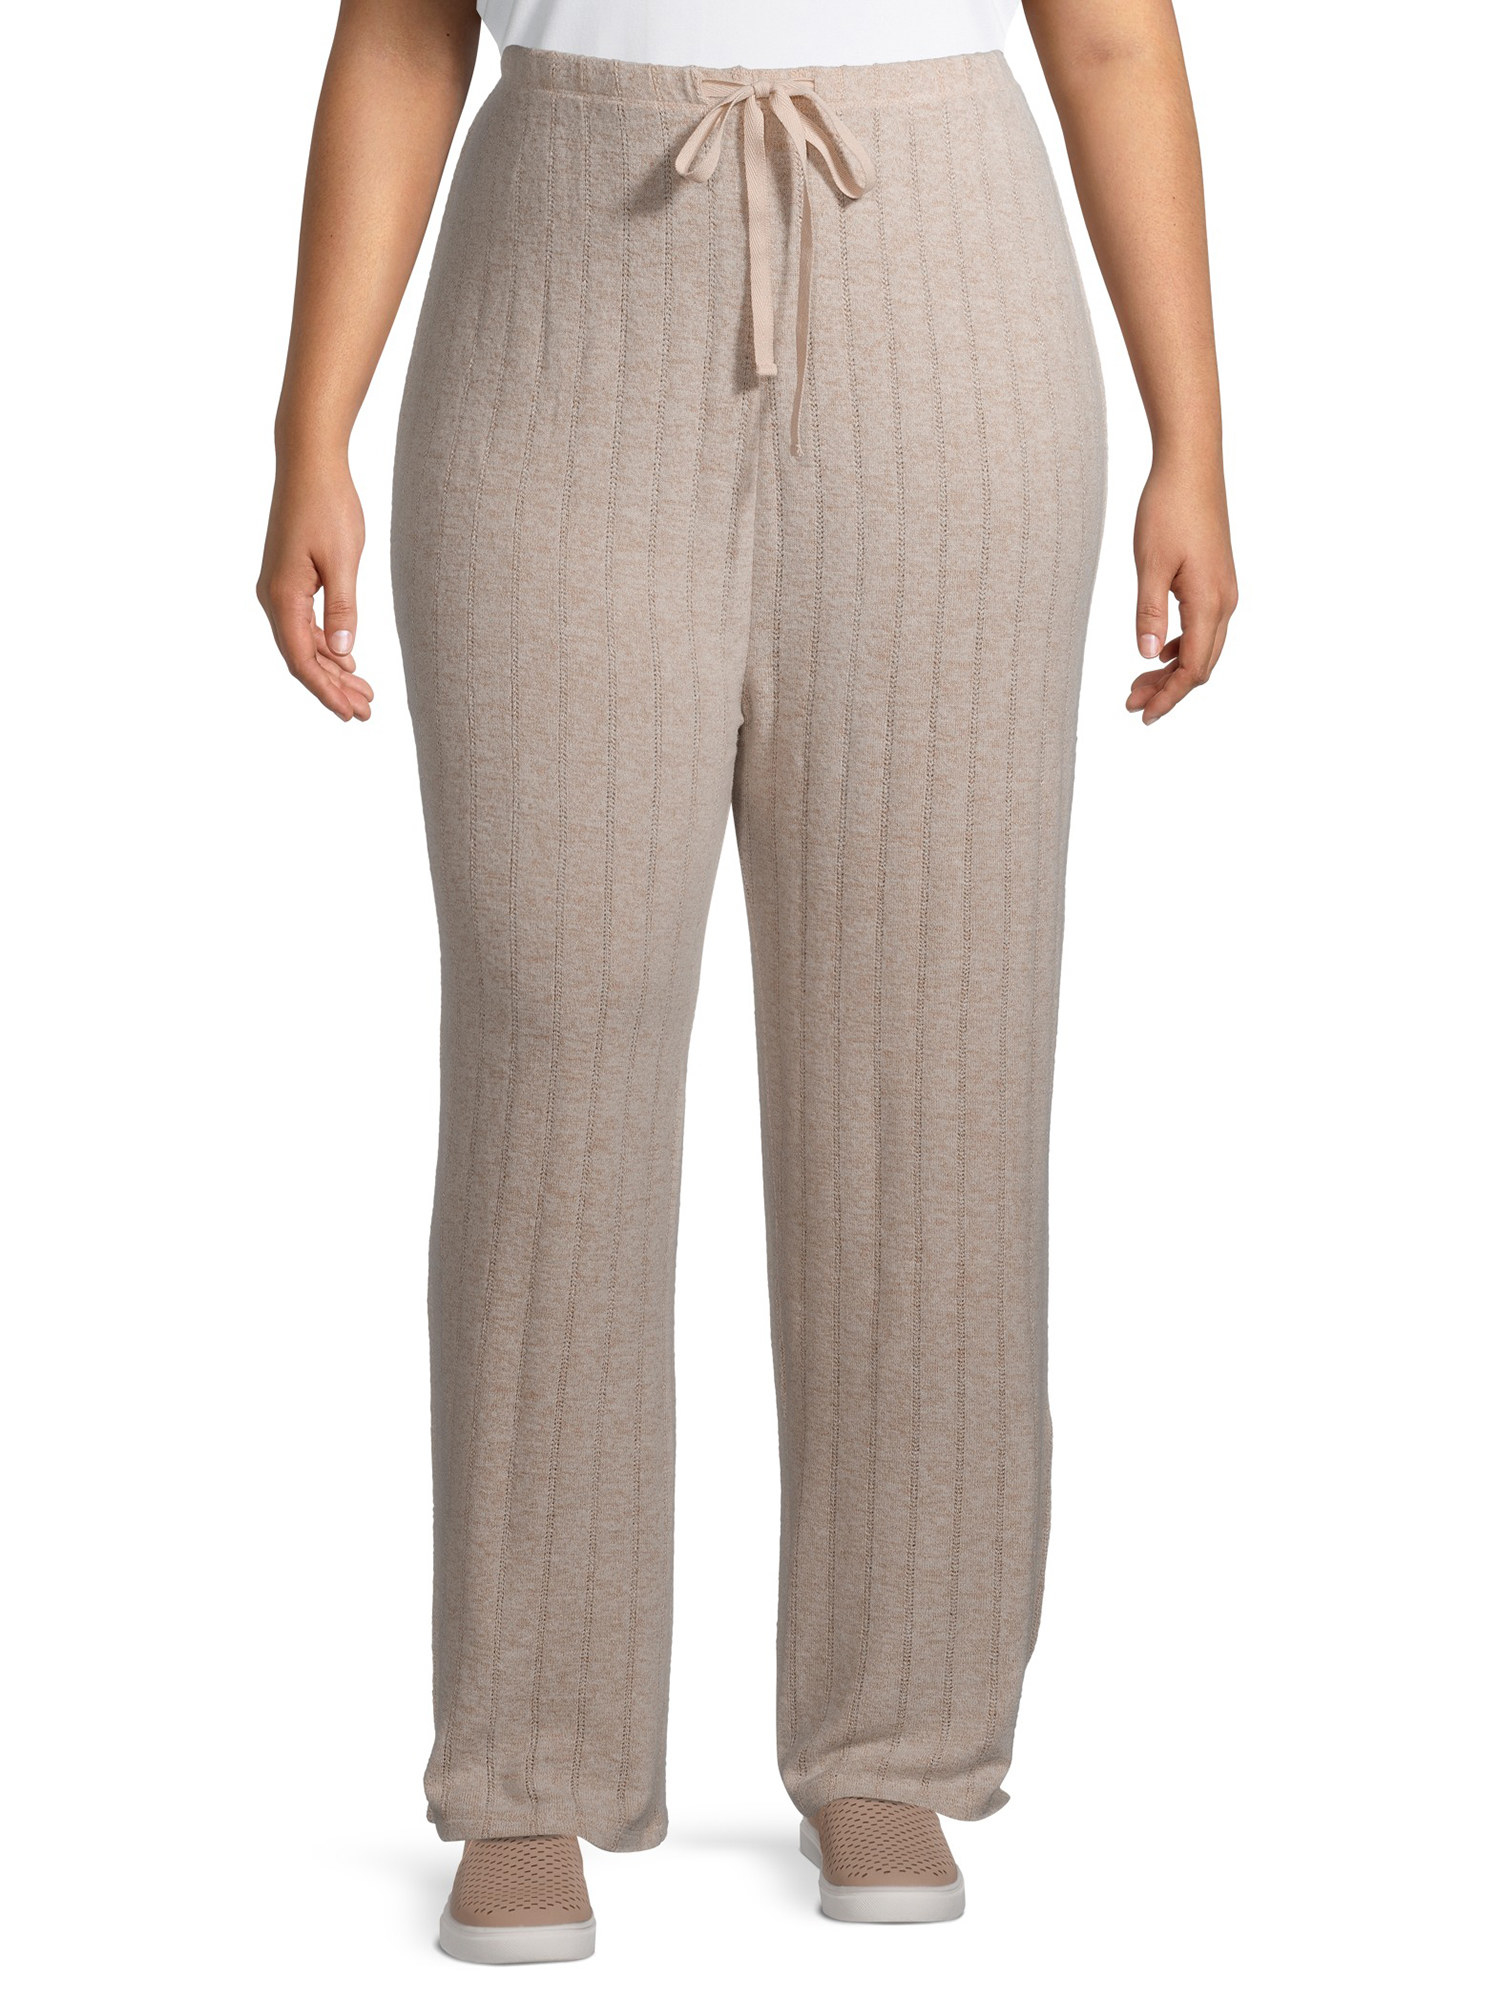 The athleisure pants